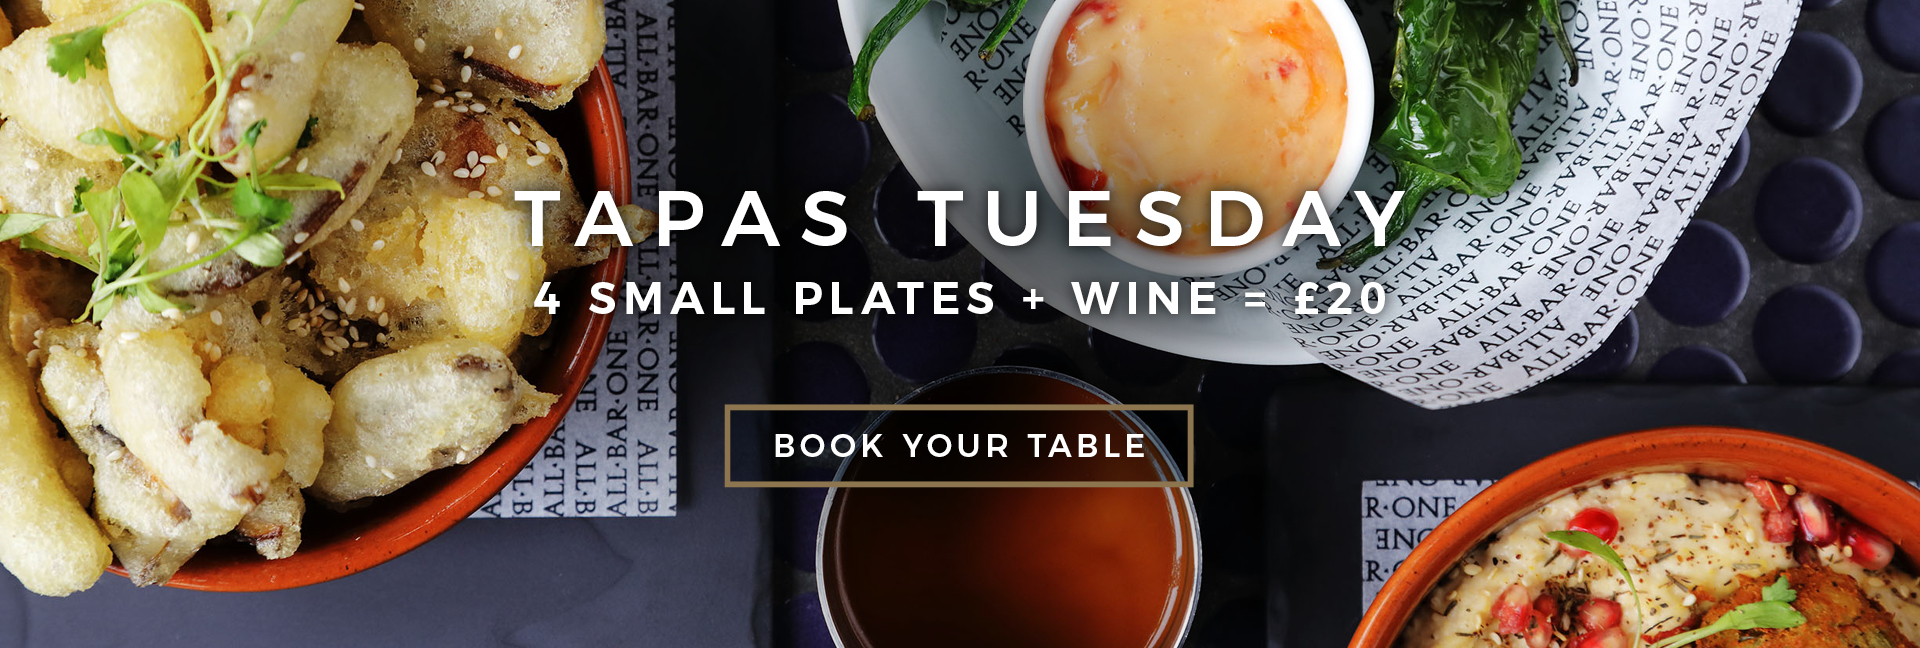 Tapas Tuesday at All Bar One Ludgate Hill - Book now